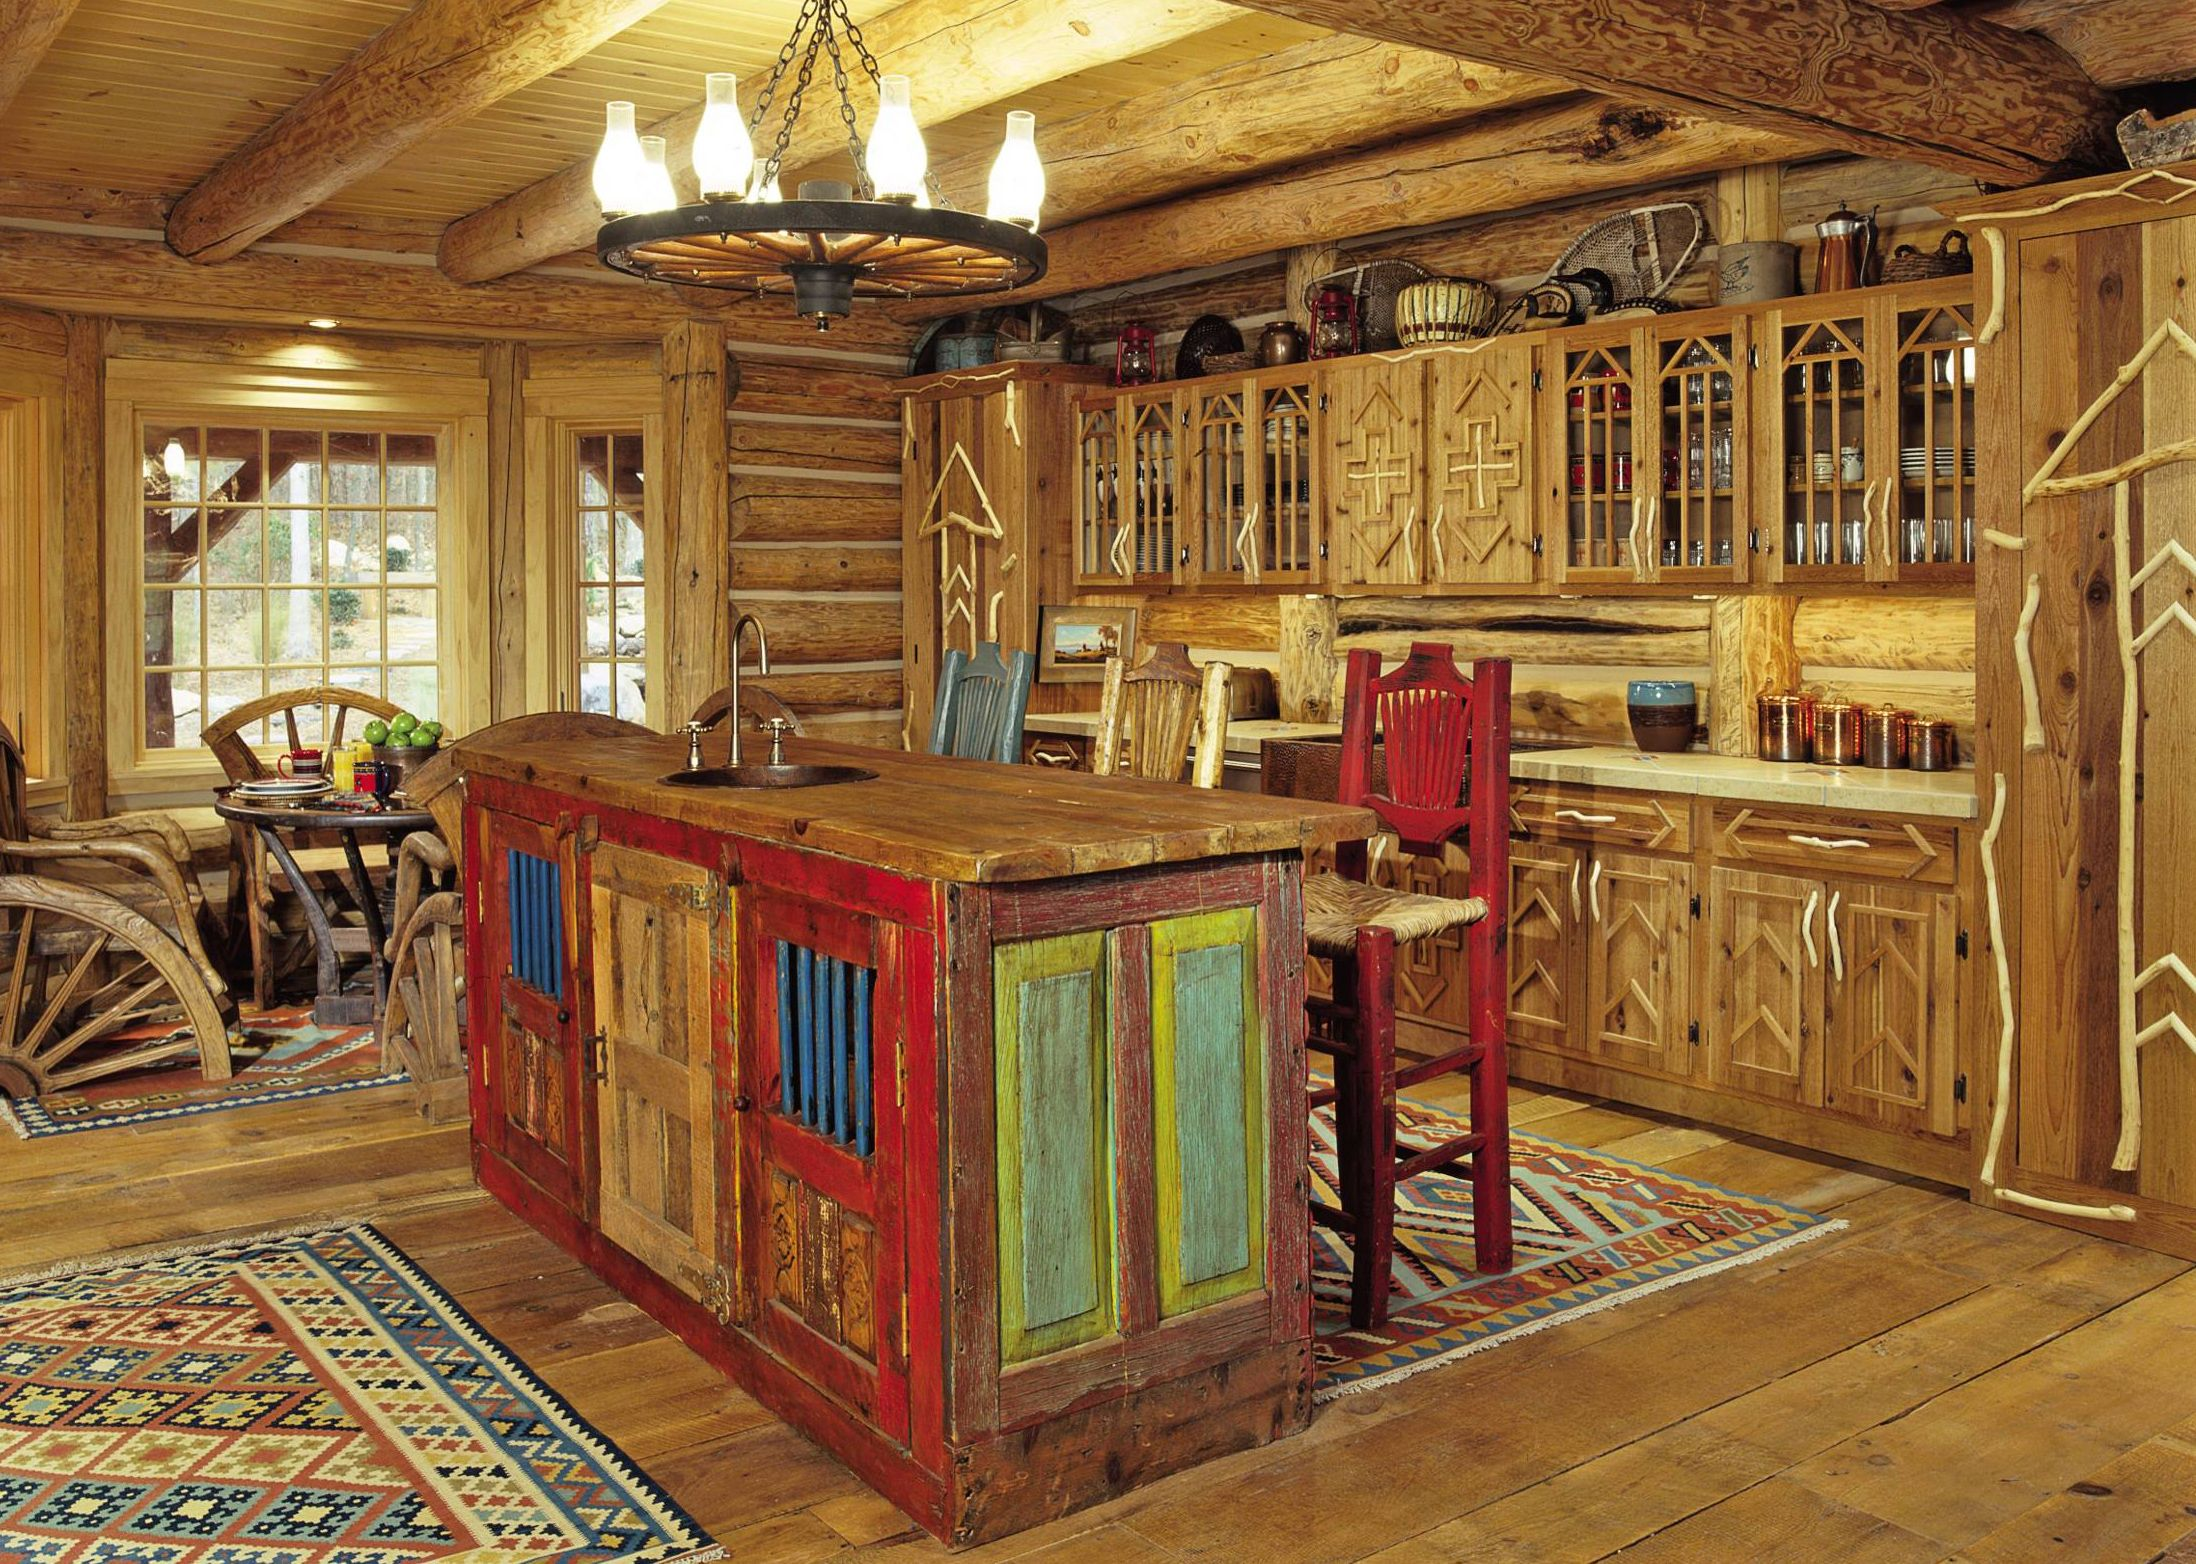 Rustic Kitchen Island Wooden Made Equiped by Sink